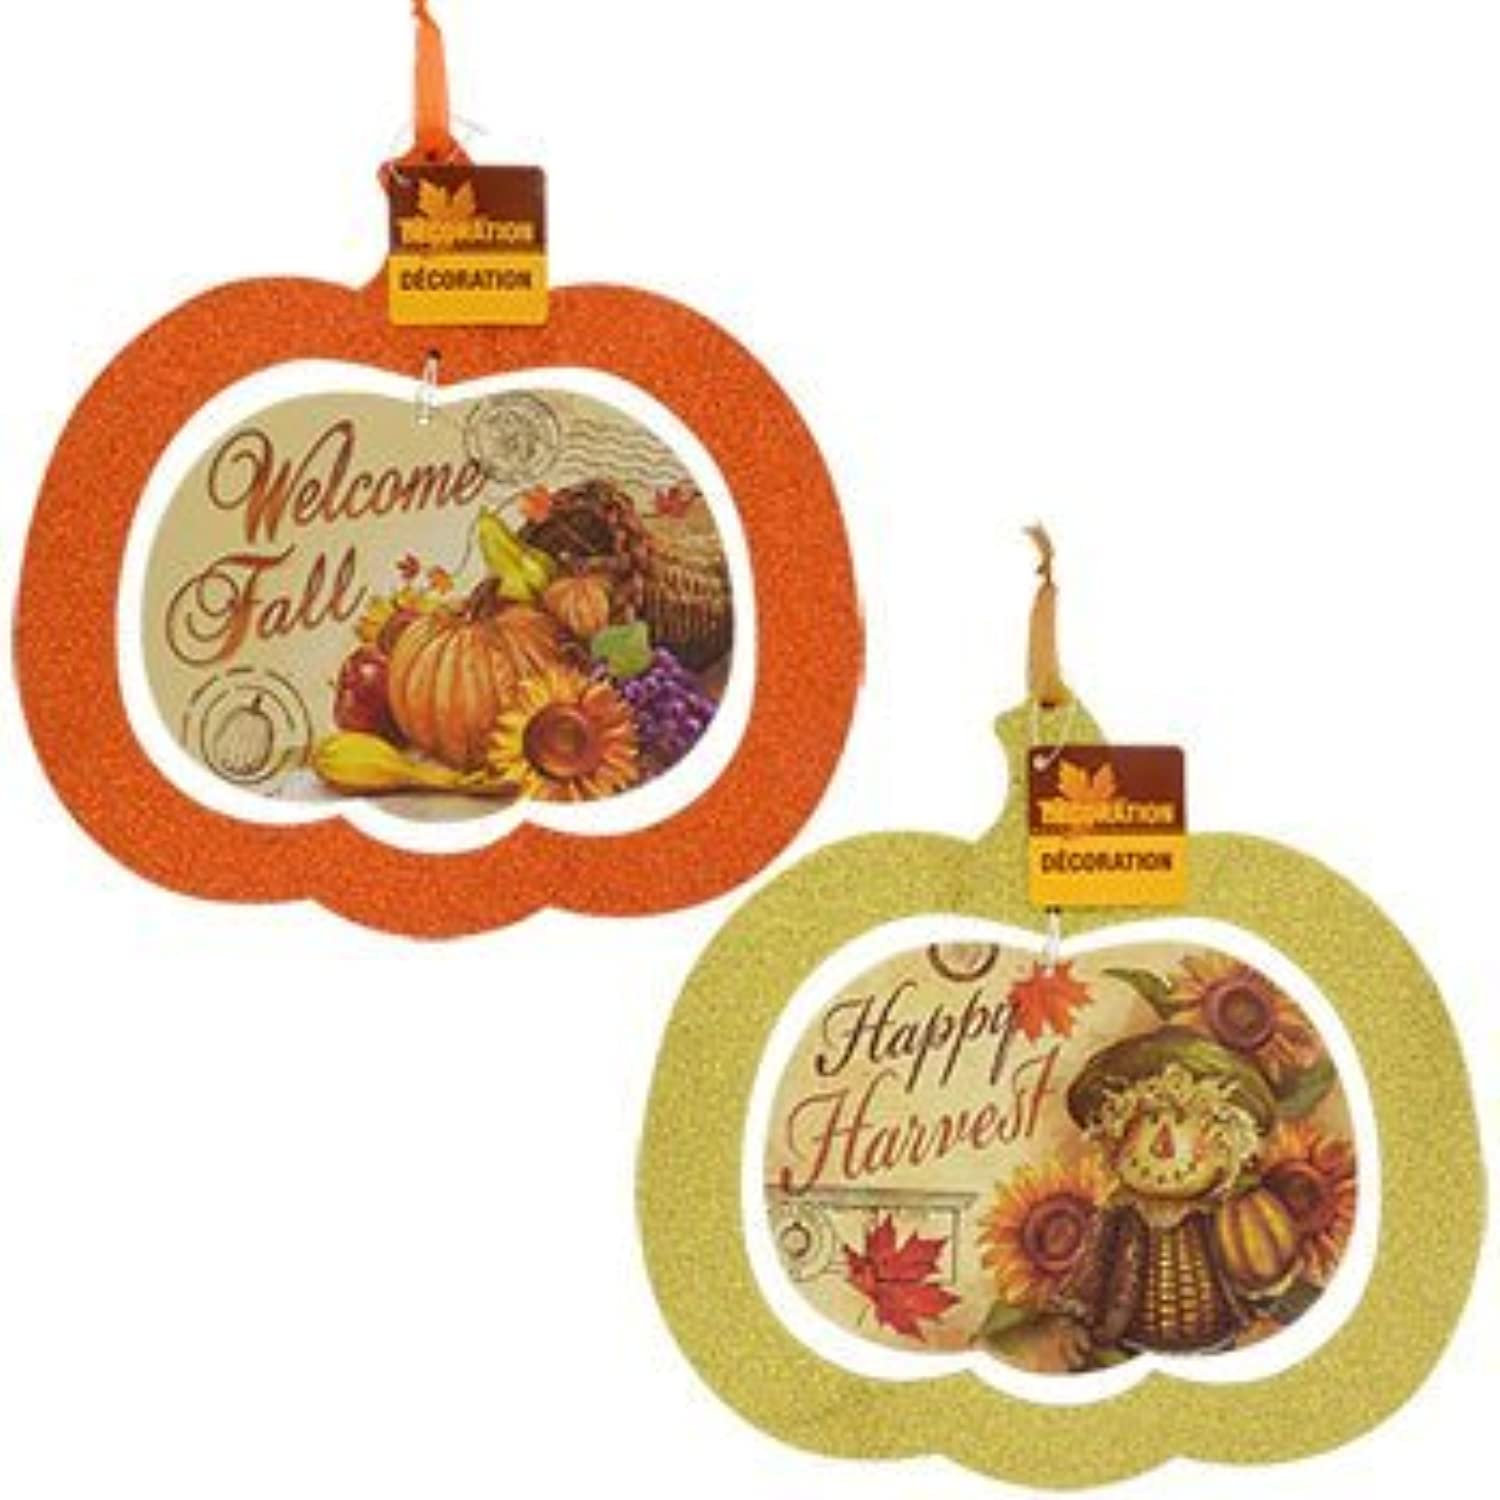 Fall Harvest Glitterot Jack-O-Lantern Pumpkins Halloween Decor Bundle Decoration Harvest Thanksgiving Window Decoration (Set of 2) A by Thanksgiving